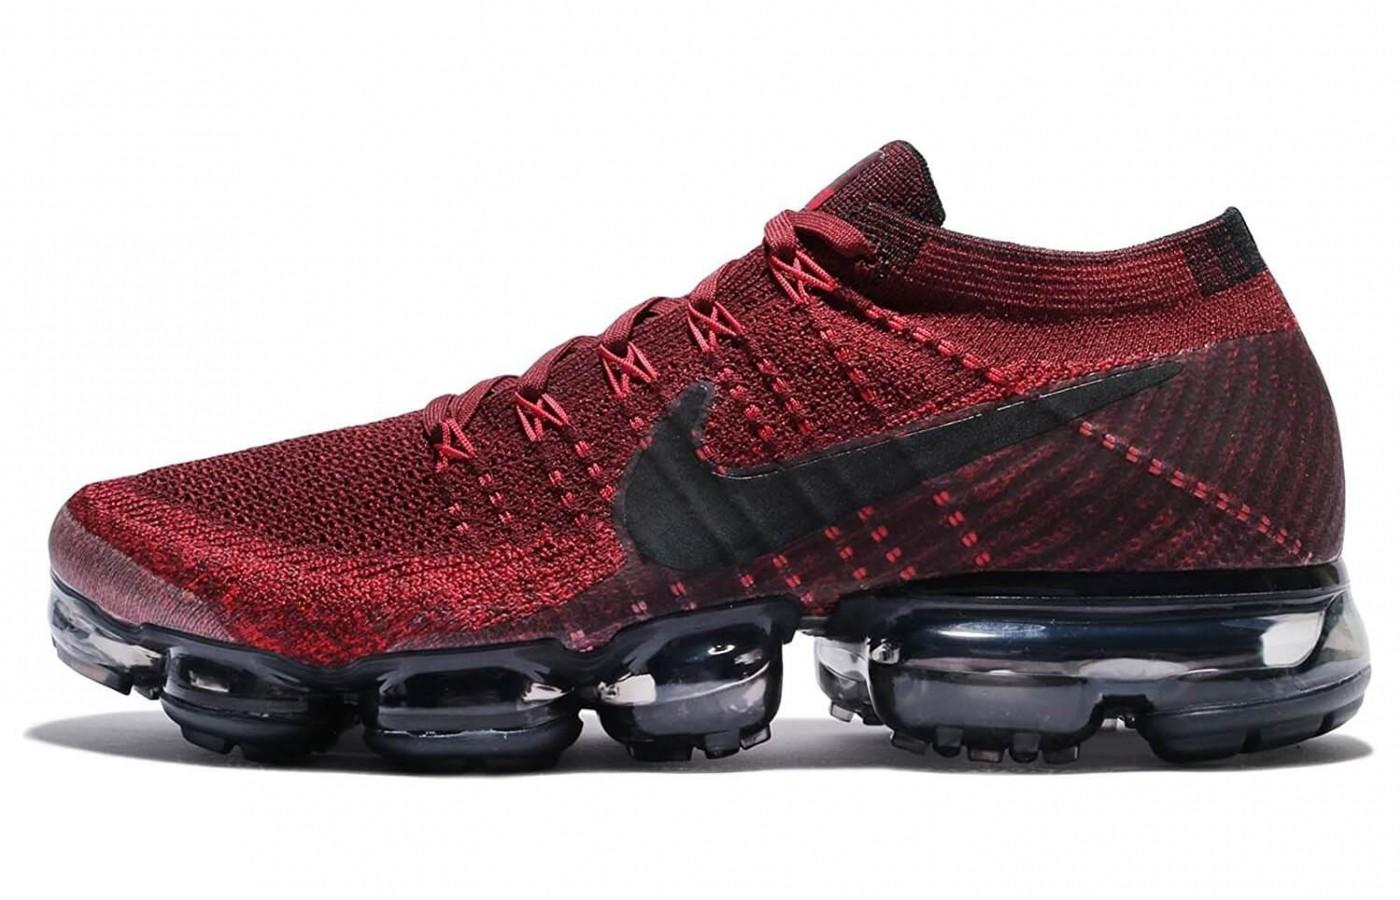 37ae46a42cc5 Nike Air Vapormax Flyknit - To Buy or Not in May 2019